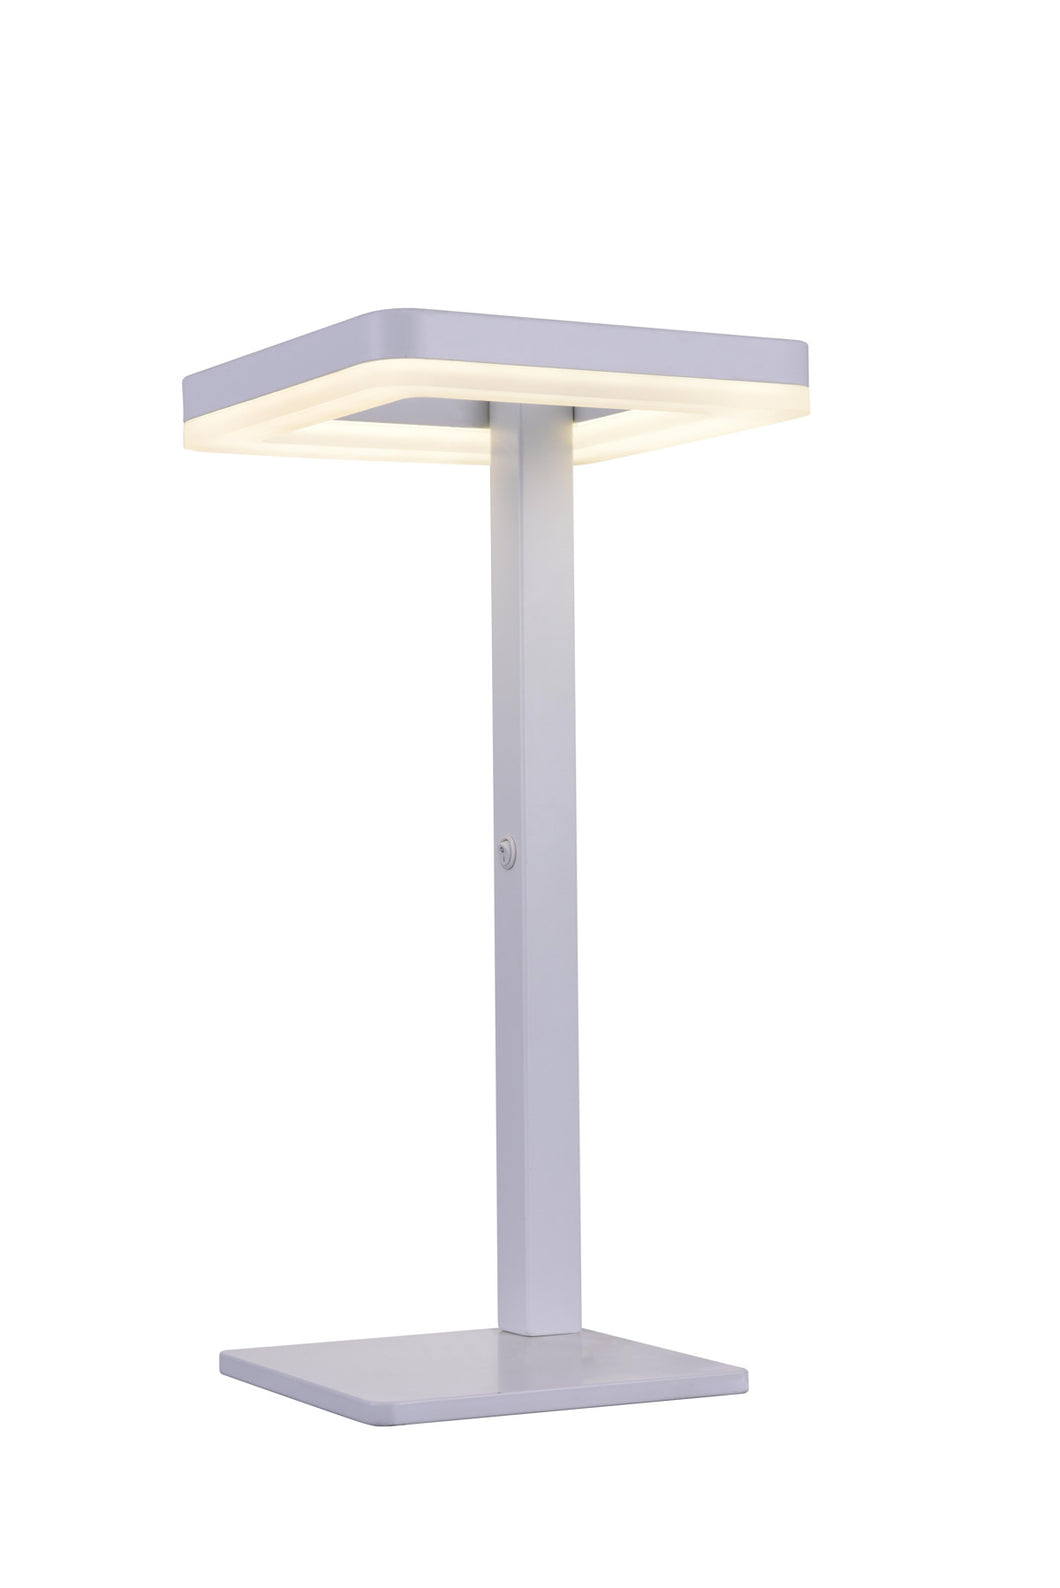 LED Table Lamp with Matte White finish